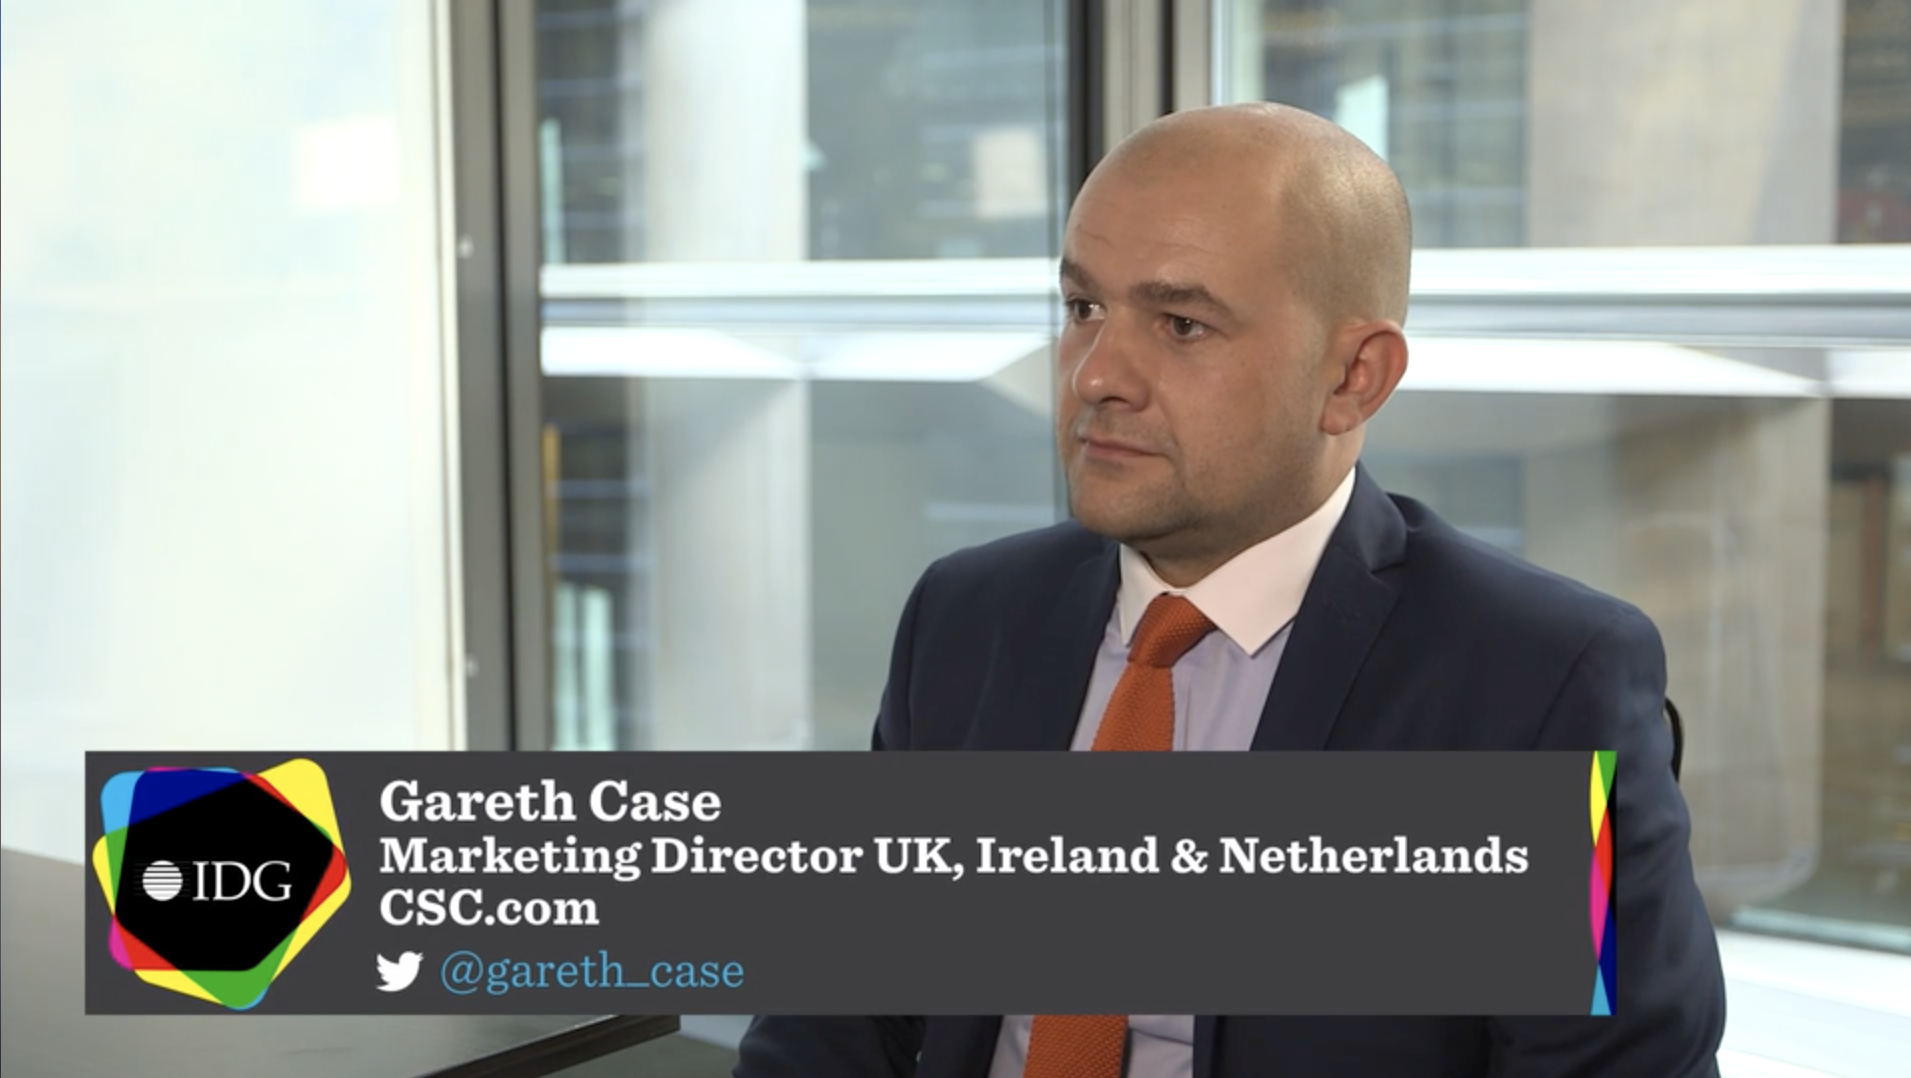 Gareth Case talks to IDG